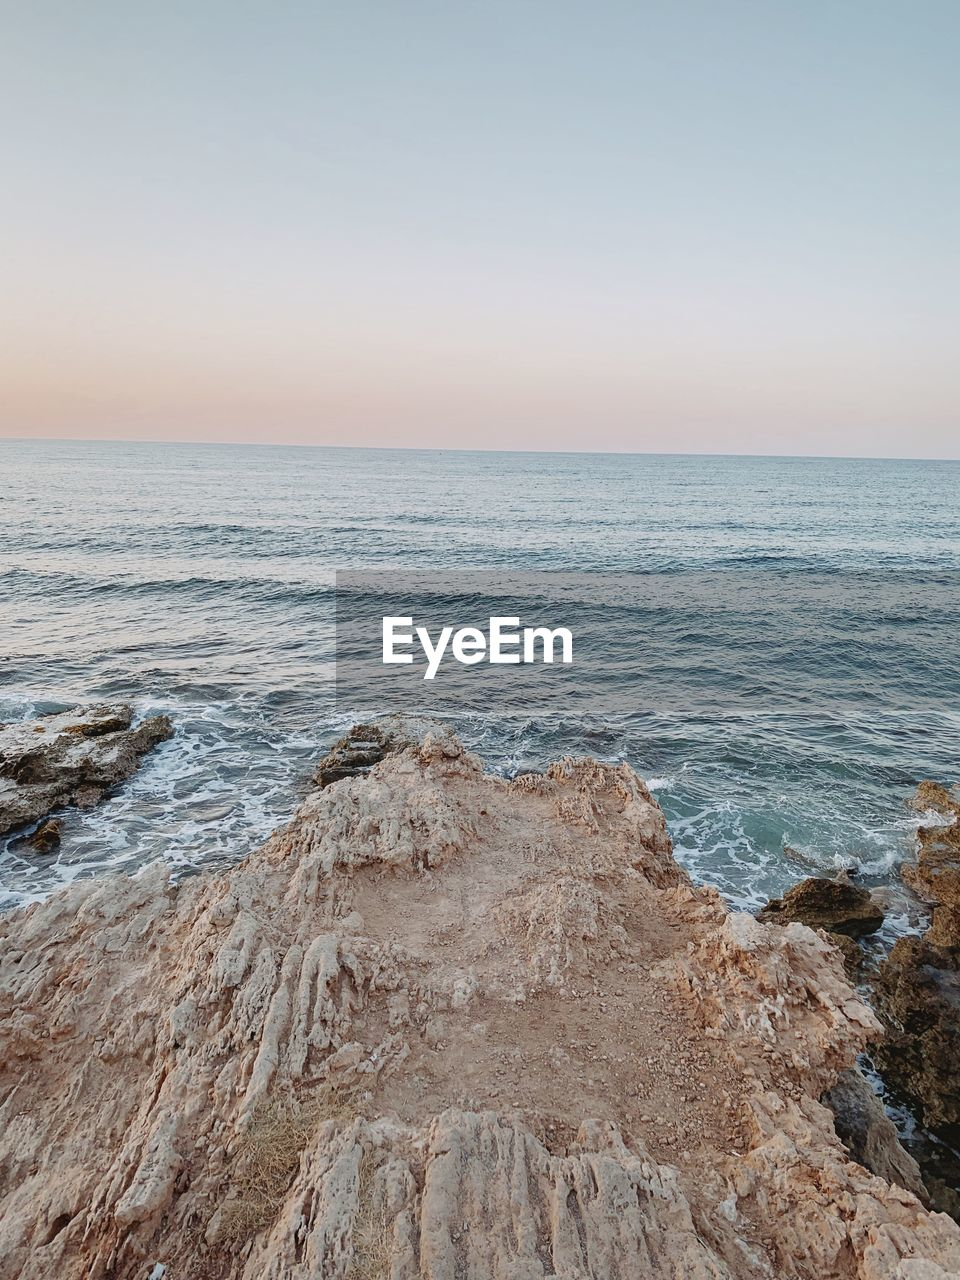 sea, sky, horizon over water, horizon, water, scenics - nature, beauty in nature, land, beach, tranquility, tranquil scene, no people, nature, idyllic, clear sky, motion, rock, sunset, copy space, outdoors